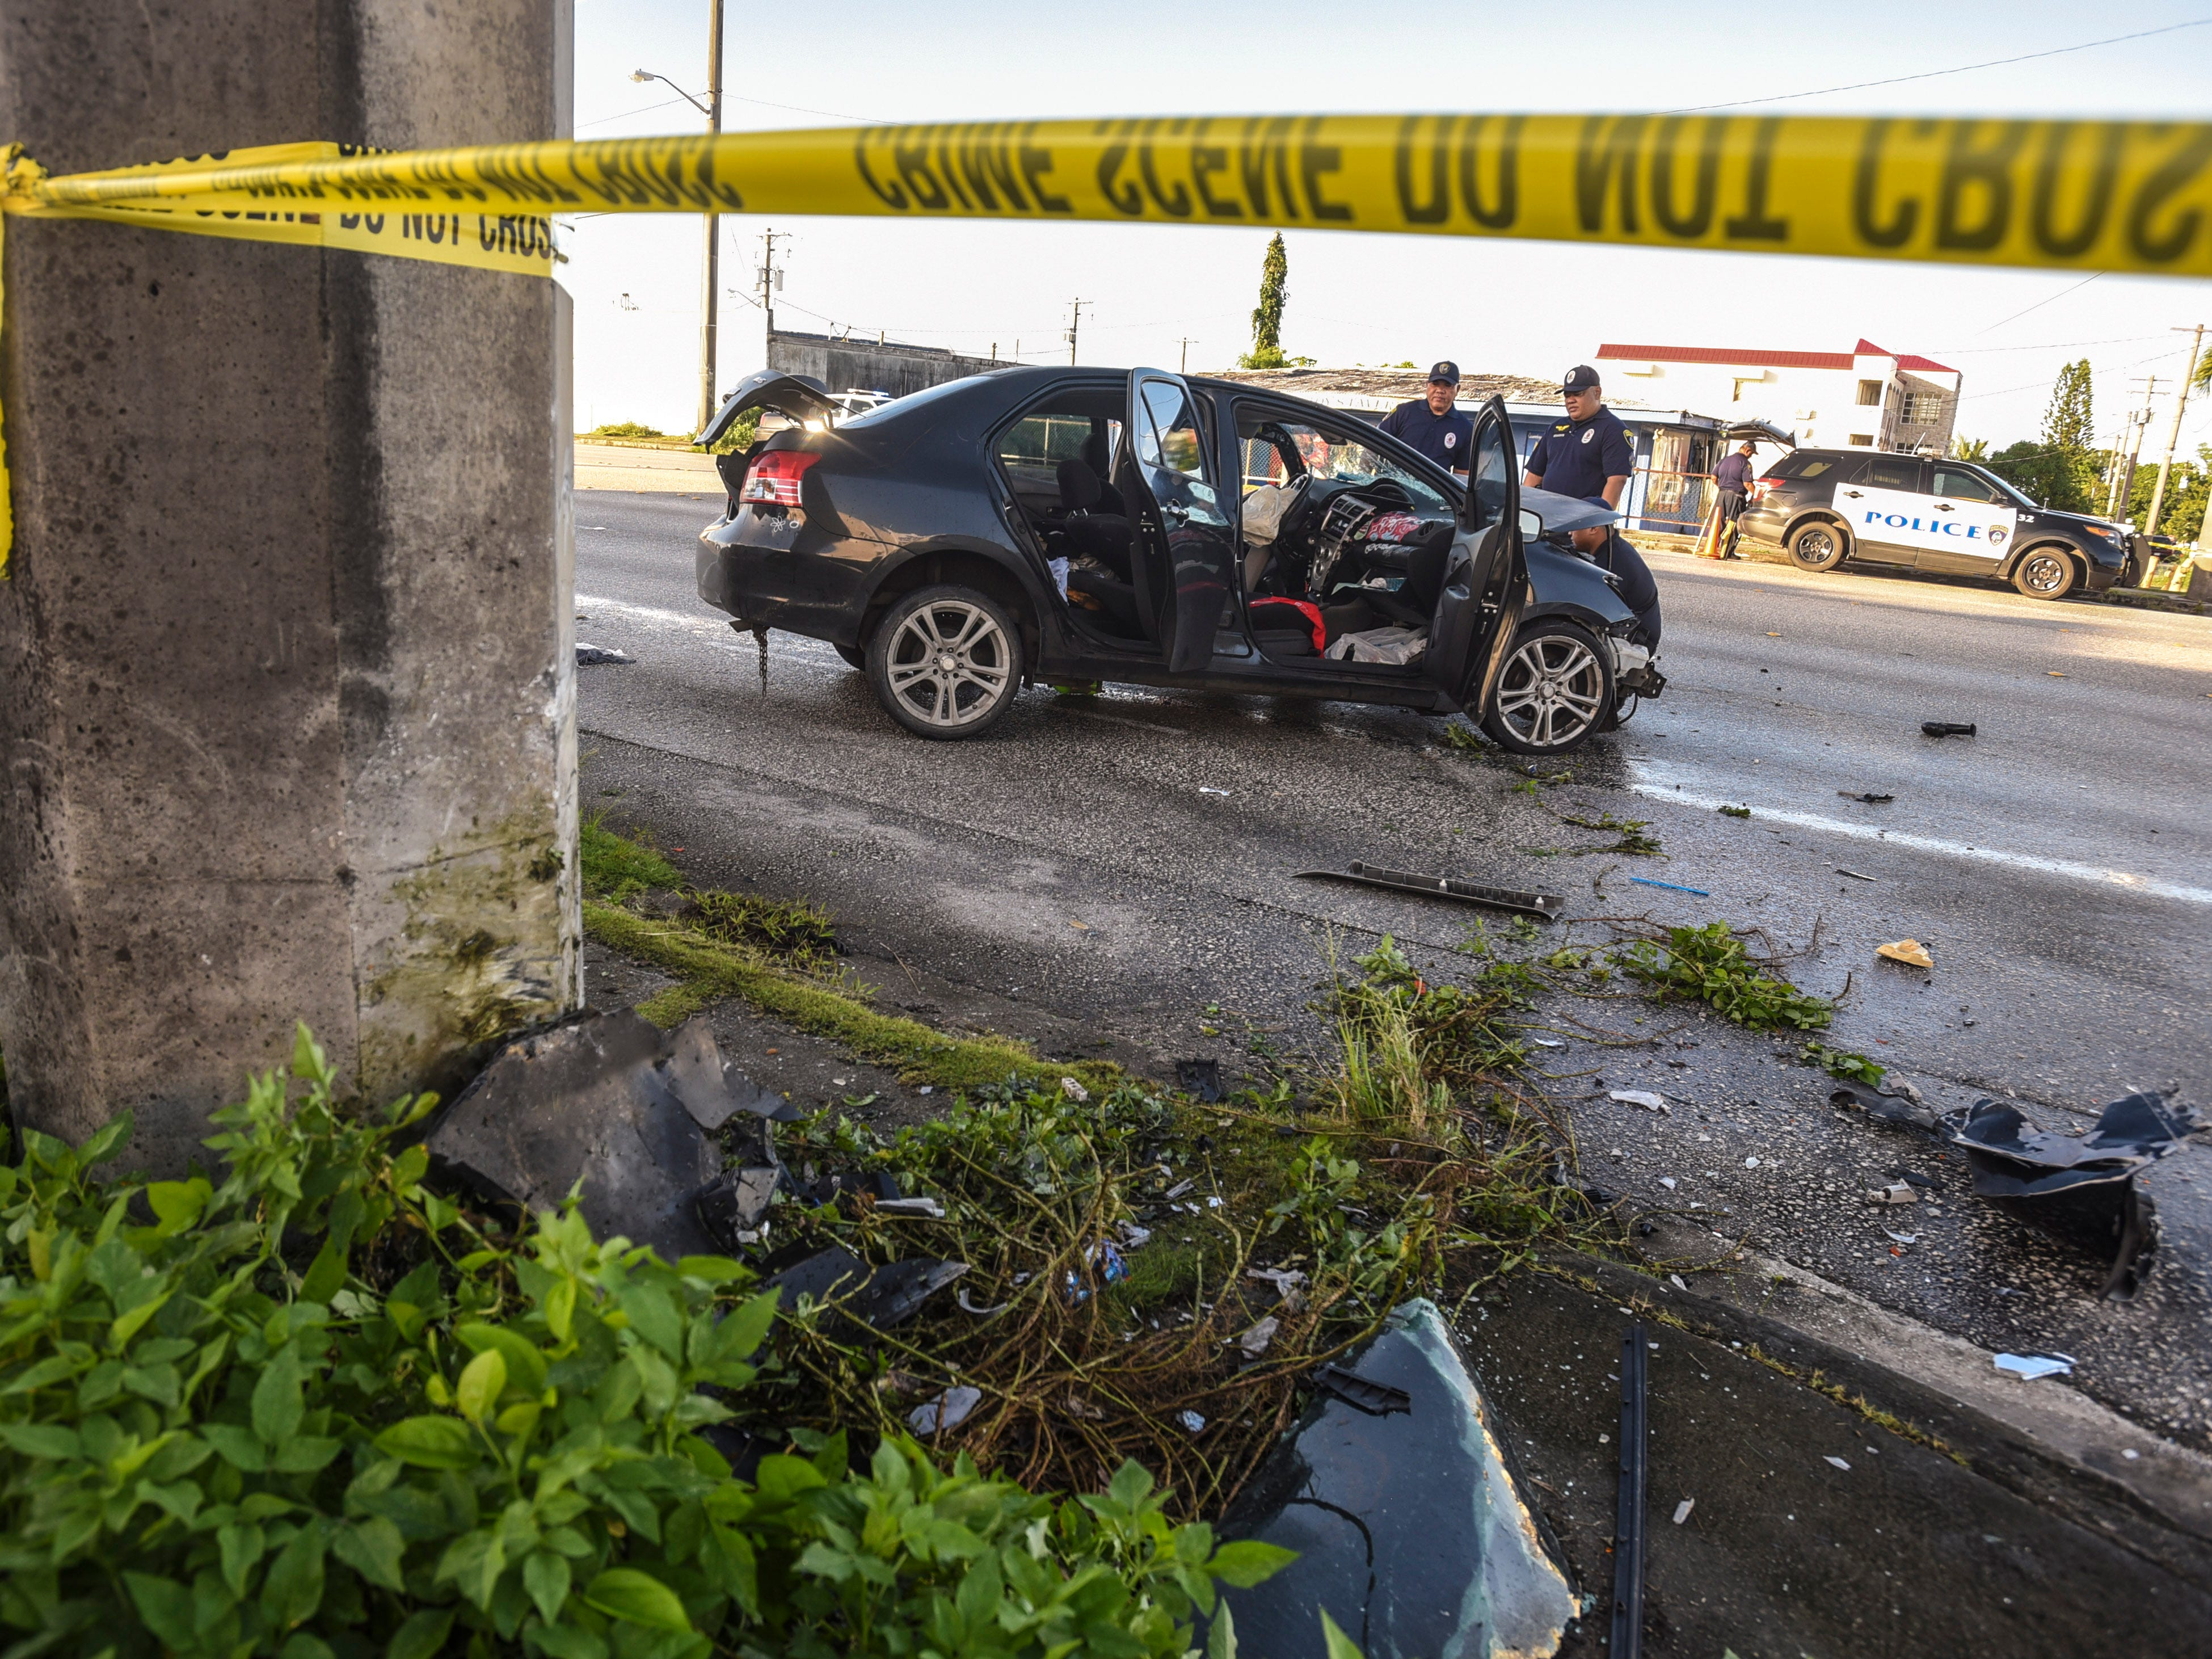 Debris from a crash remain scattered at the scene of a fatal auto-off roadway incident, near the JNS Divers shop on Chalan San Antonio, as officers with the Guam Police Department's Highway Patrol Division investigate the incident in Tamuning on Wednesday, Dec. 5, 2018. The crash claimed the life of the driver, who was the sole occupant, after the vehicle collided into a concrete utility pole on the side of the roadway. The man's death marks the 22nd fatality and the 20th fatal crash that has occured this year.